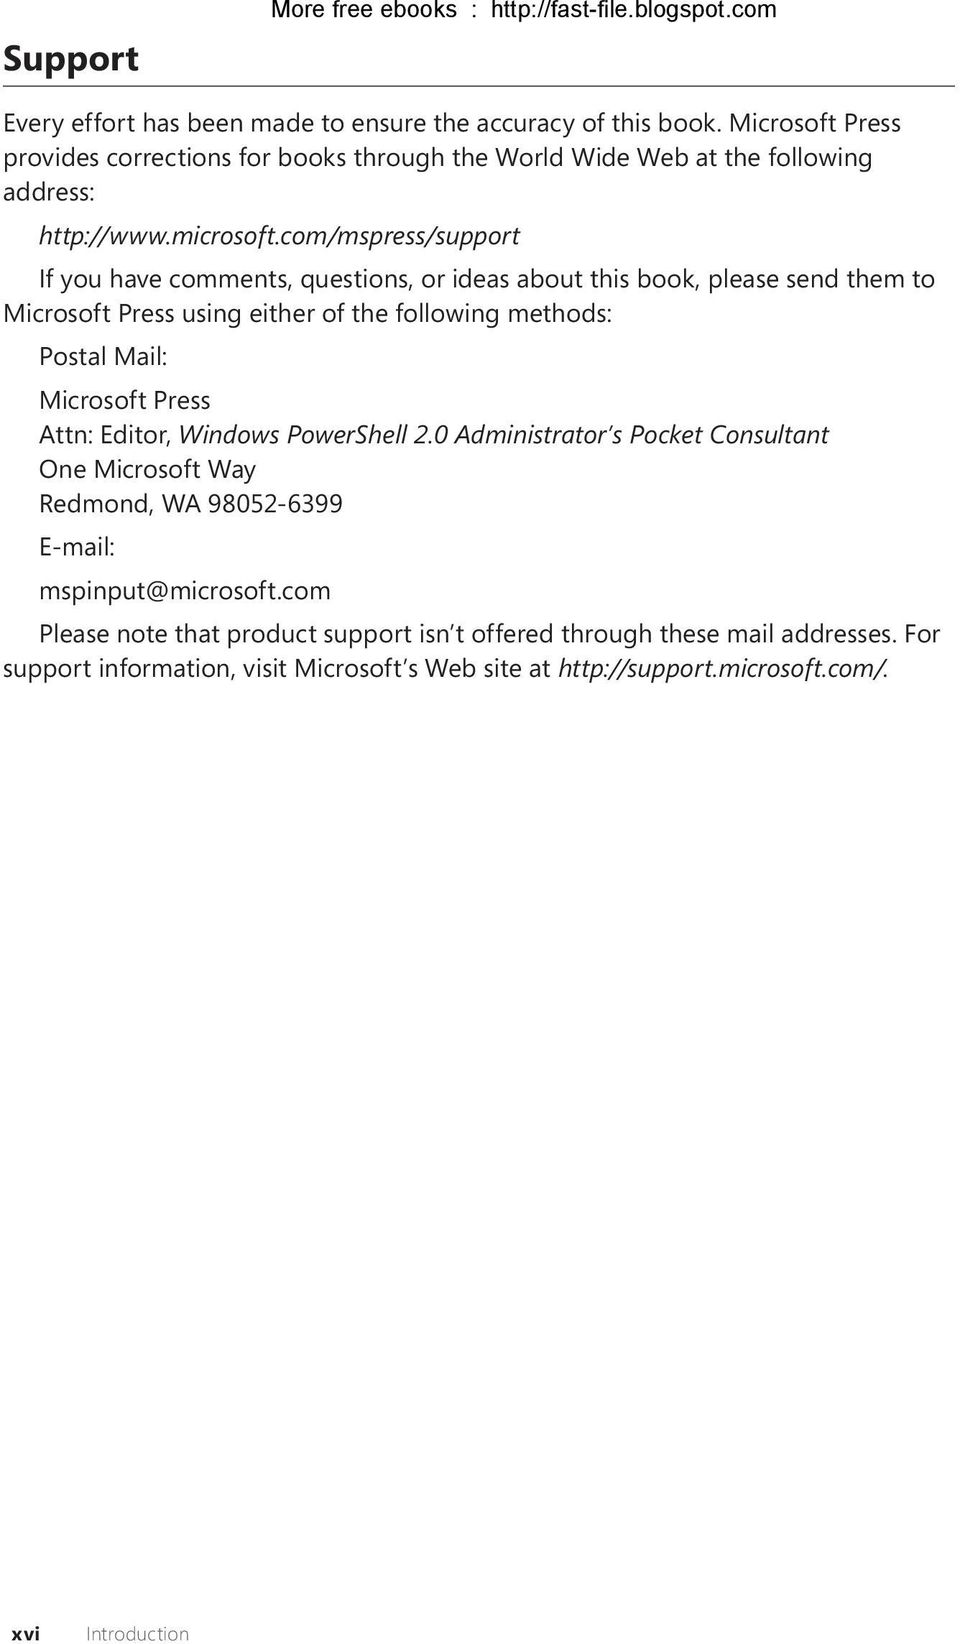 com/mspress/support If you have comments, questions, or ideas about this book, please send them to Microsoft Press using either of the following methods: Postal Mail: Microsoft Press